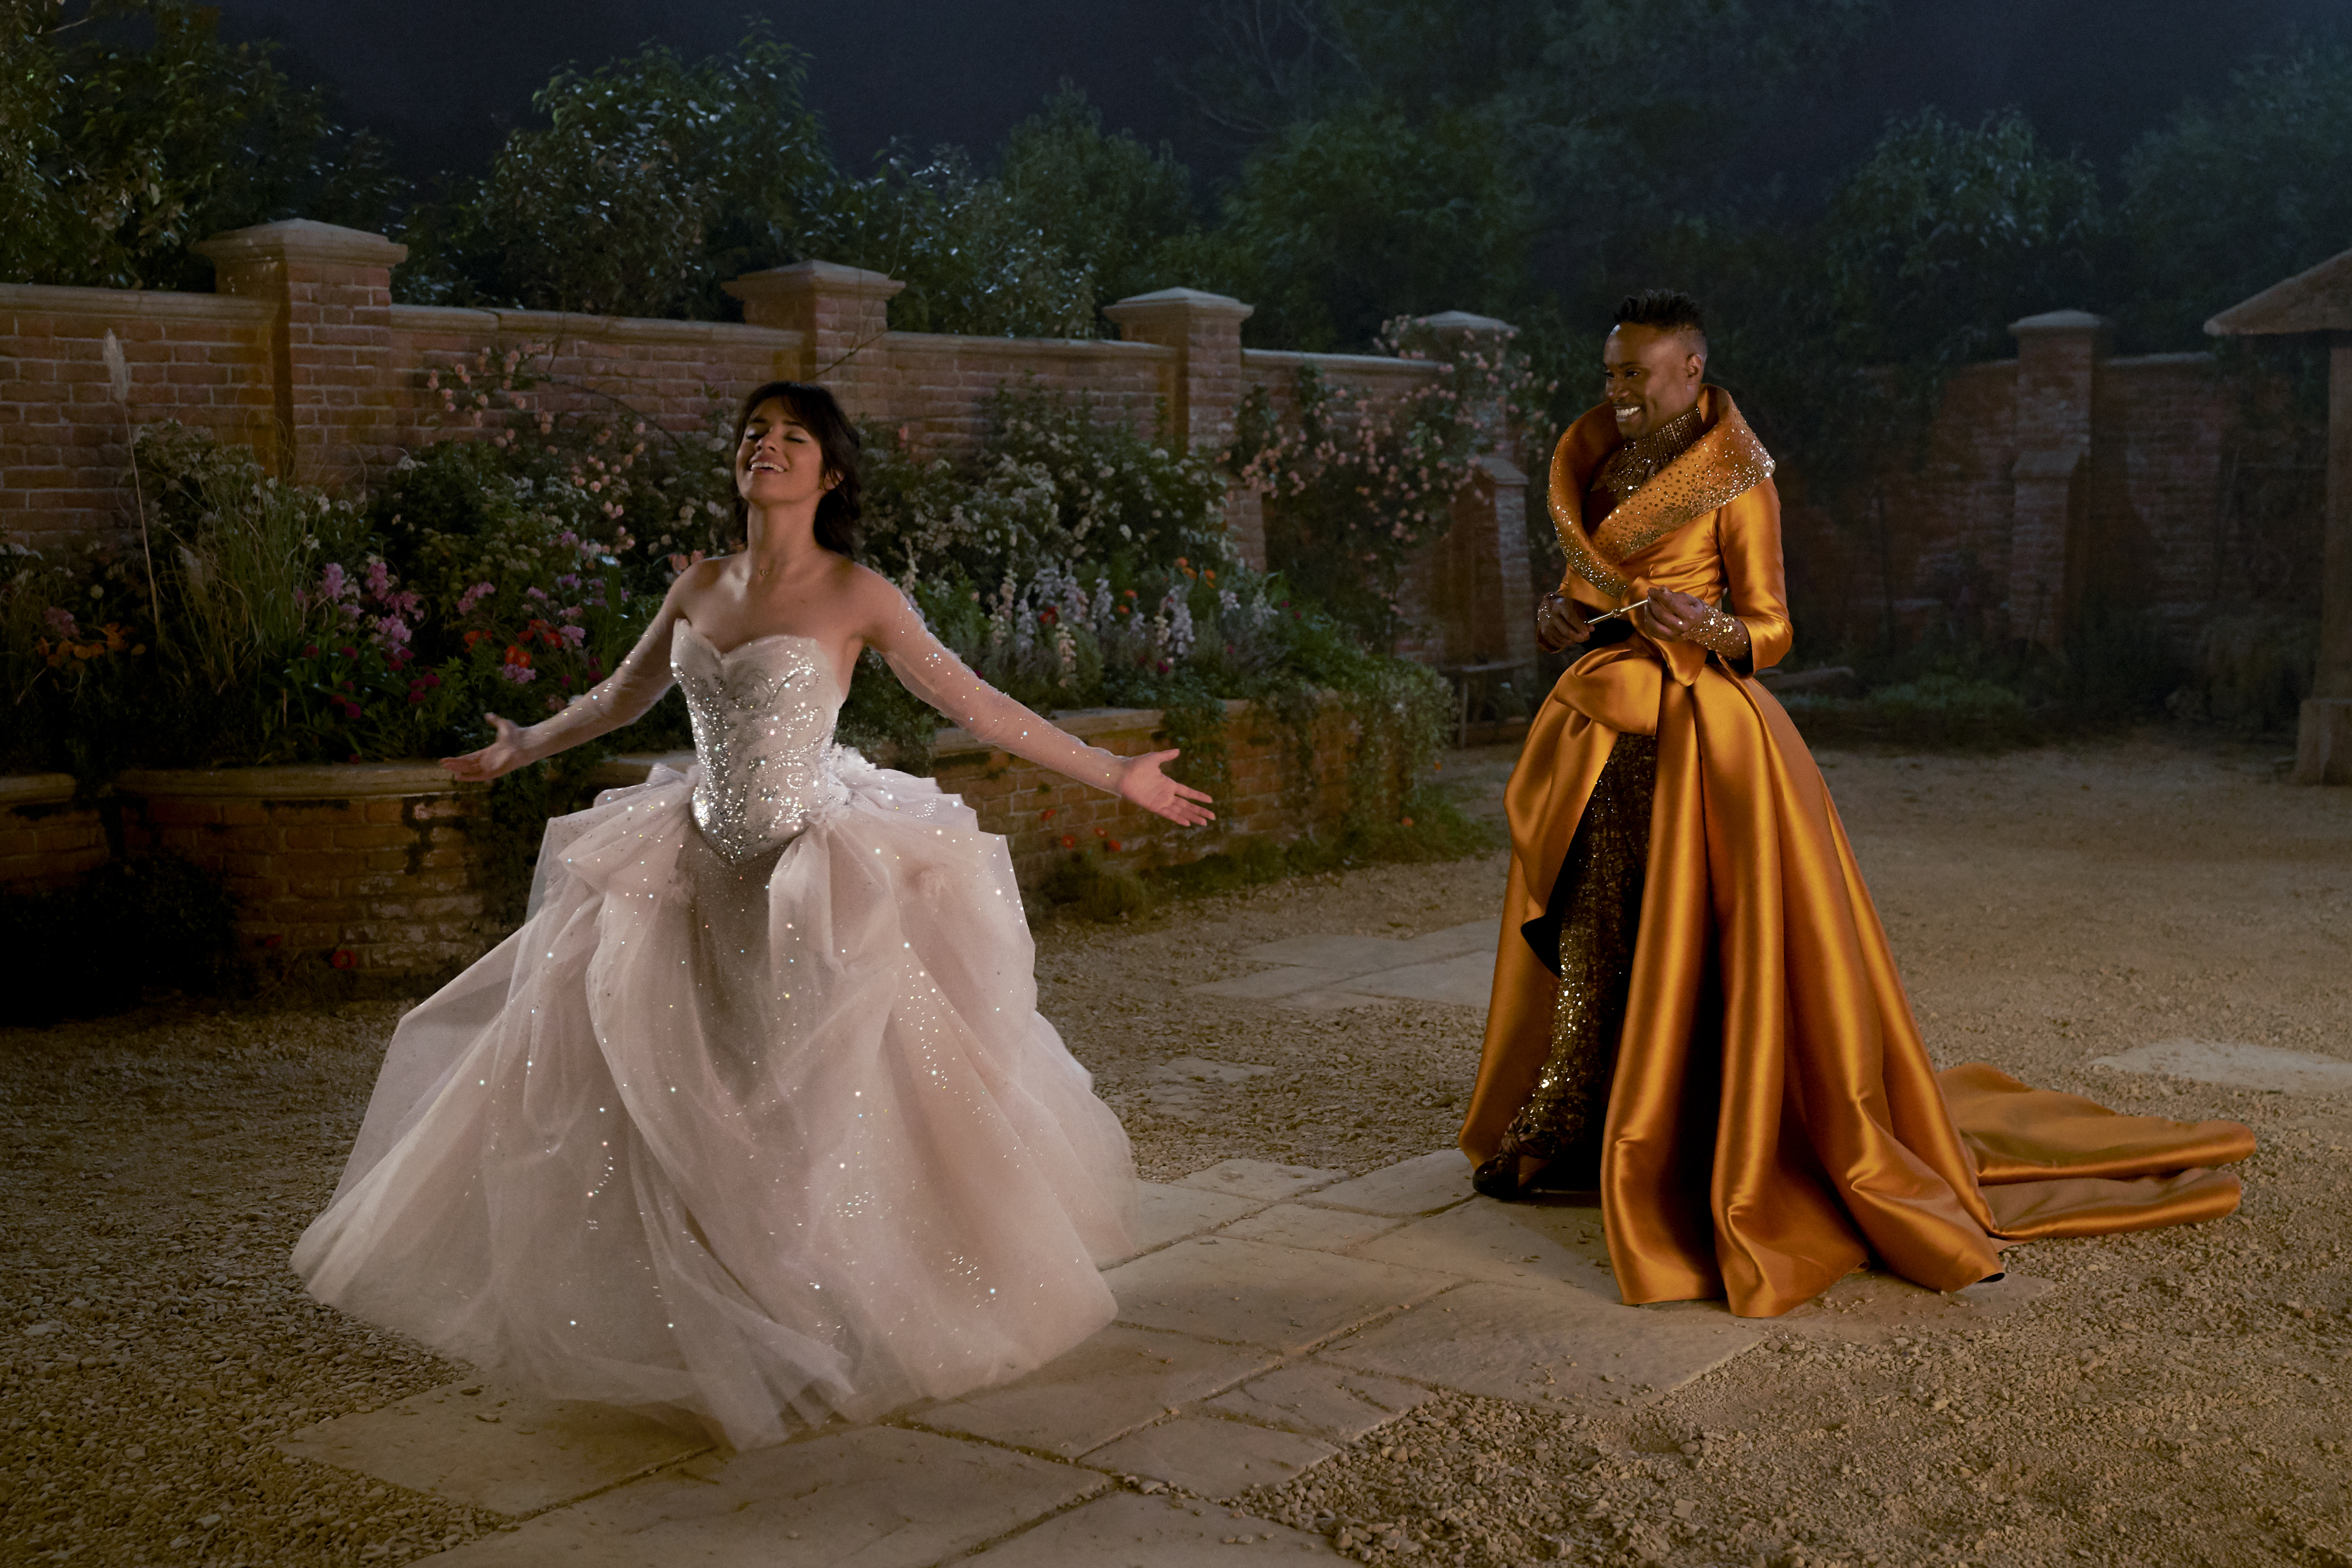 A still from 'Cinderella' (2021) of Billy Porter as the Fabulous Godmother watching Cinderella